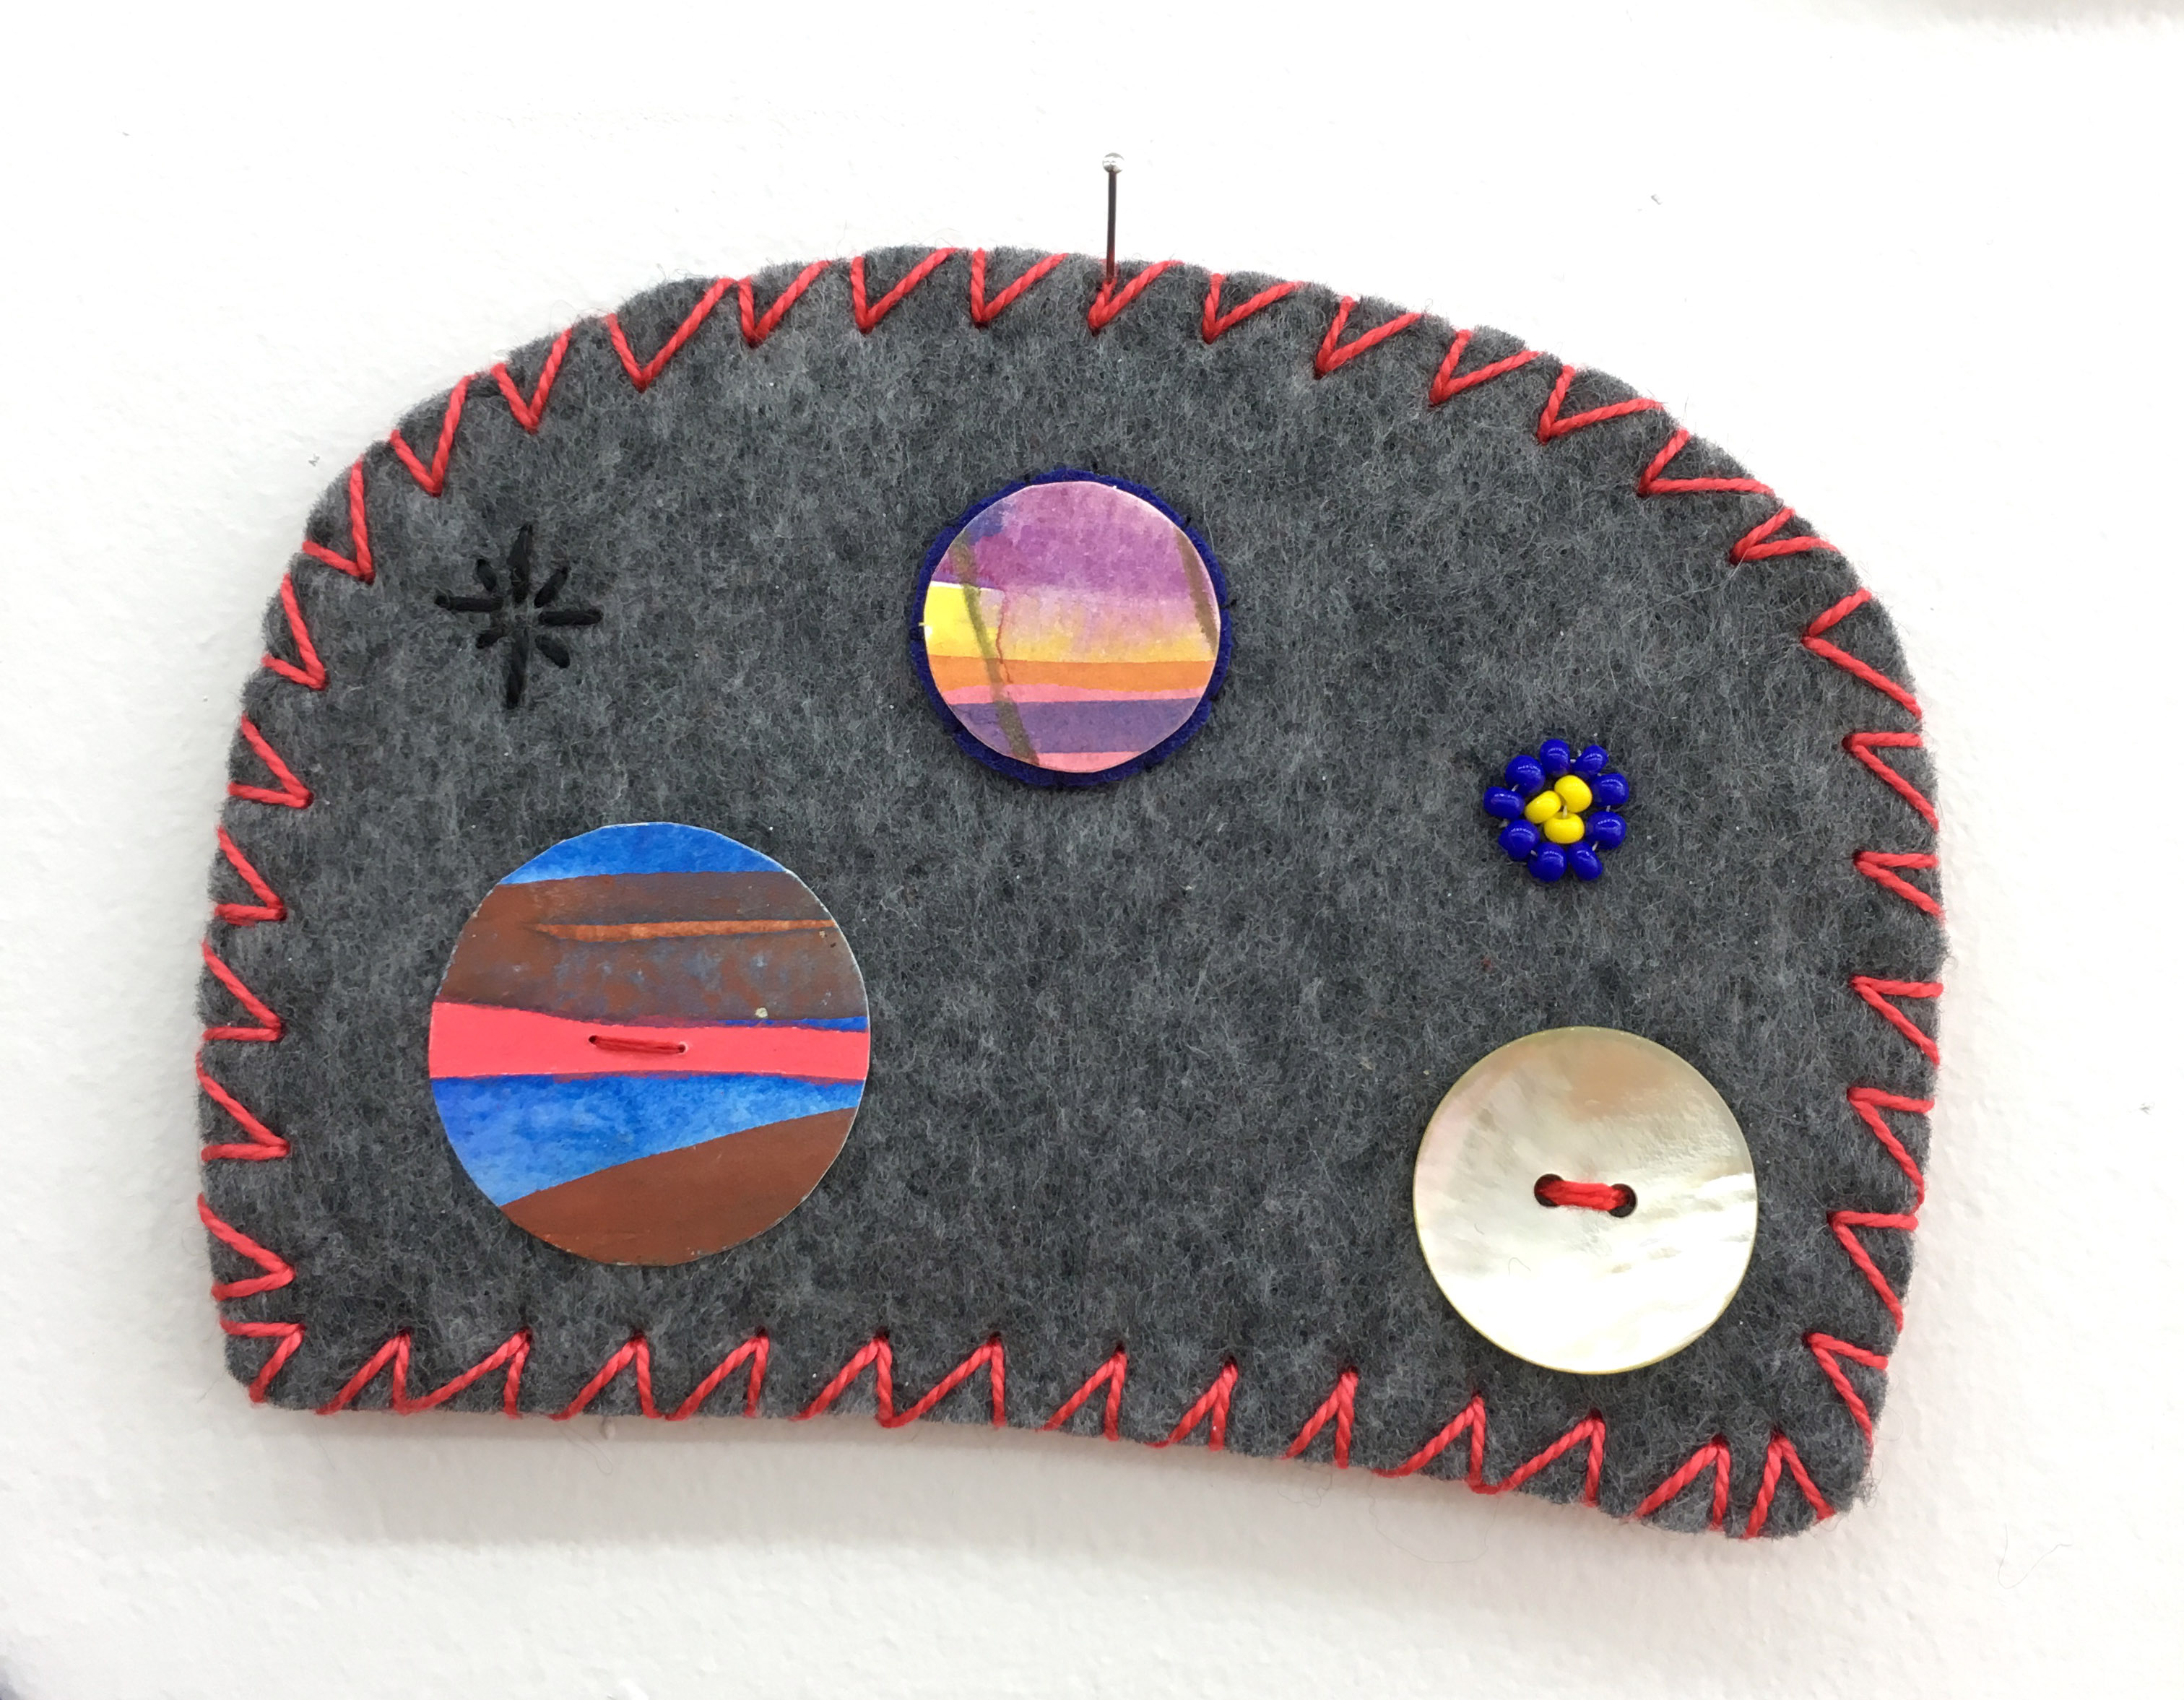 """Ovoid Felts, Charlene Vickers (Anishinabe), Watercolour, paper, shell buttons, glass beads on felt with embroidery edges, 5"""" x 3.5"""", SOLD"""